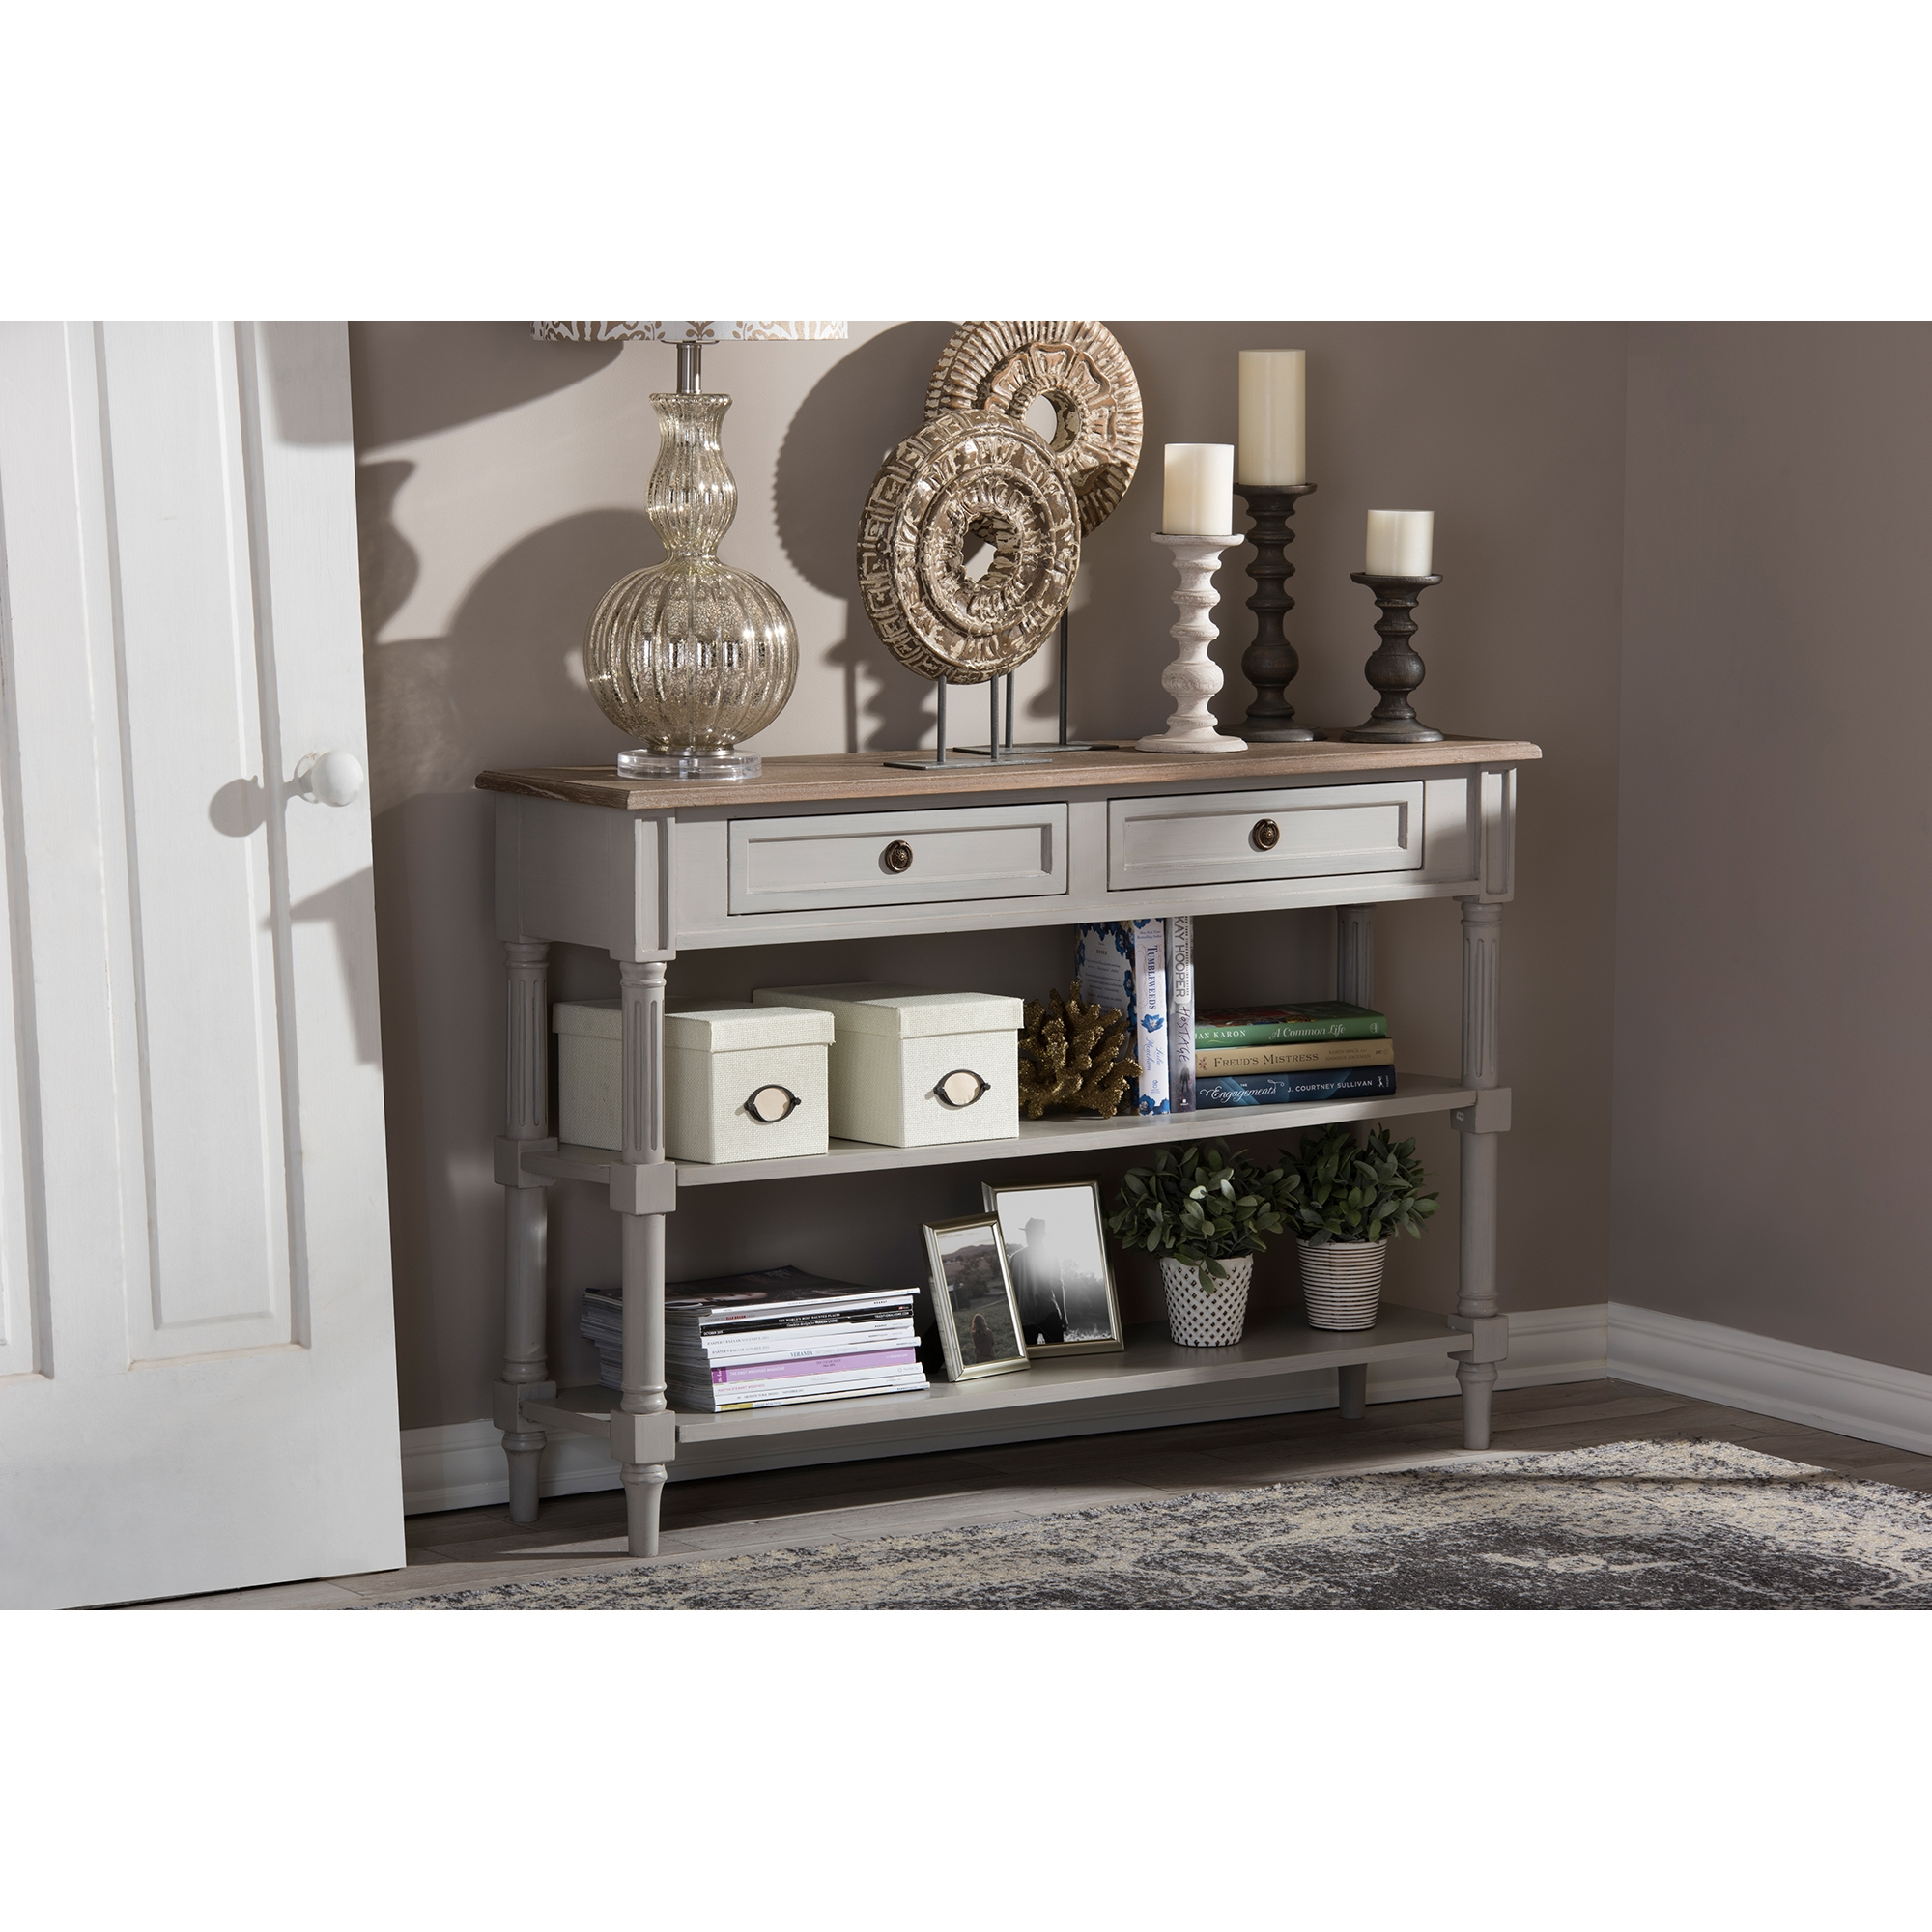 baxton studio edouard french provincial style white wash distressed twotone 2drawer console